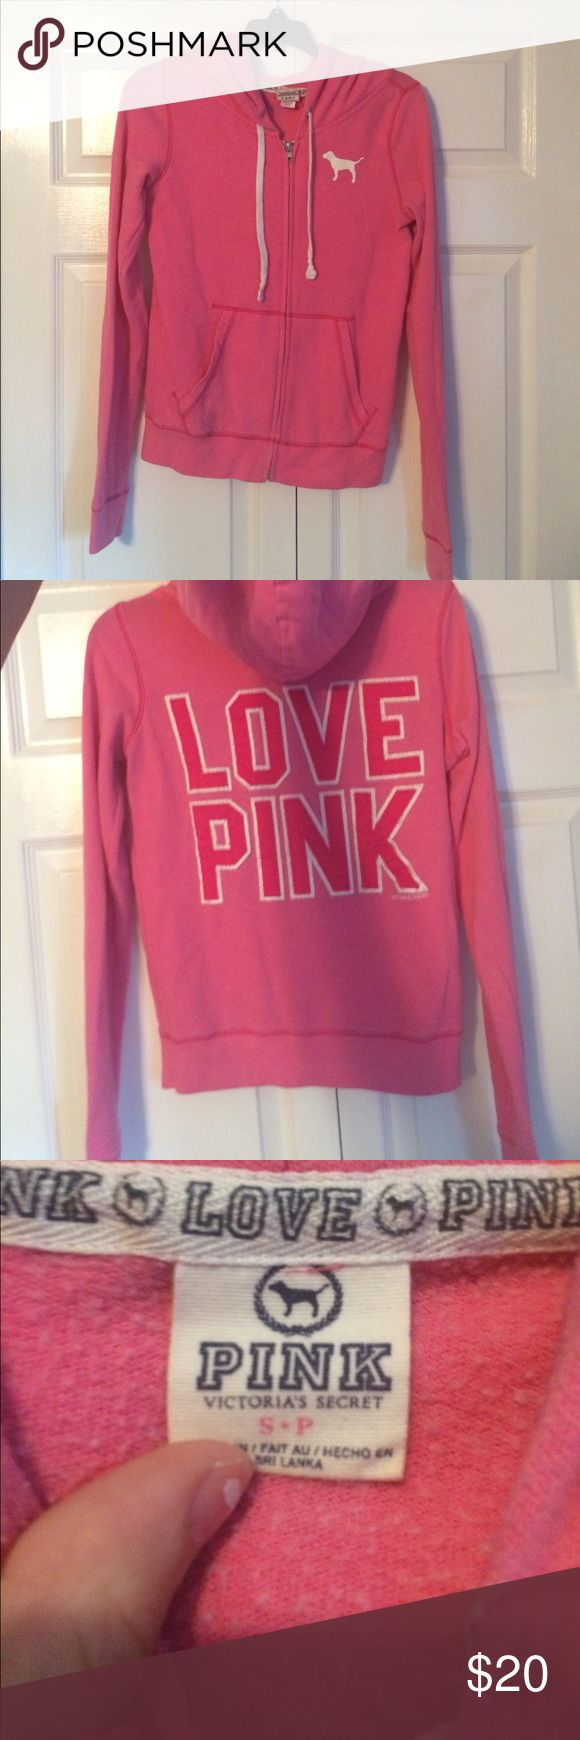 pink PINK zip up size small small pink PINK sweatshirt! lightly warn still in good condition just doesn't fit anymore PINK Victoria's Secret Tops Sweatshirts & Hoodies